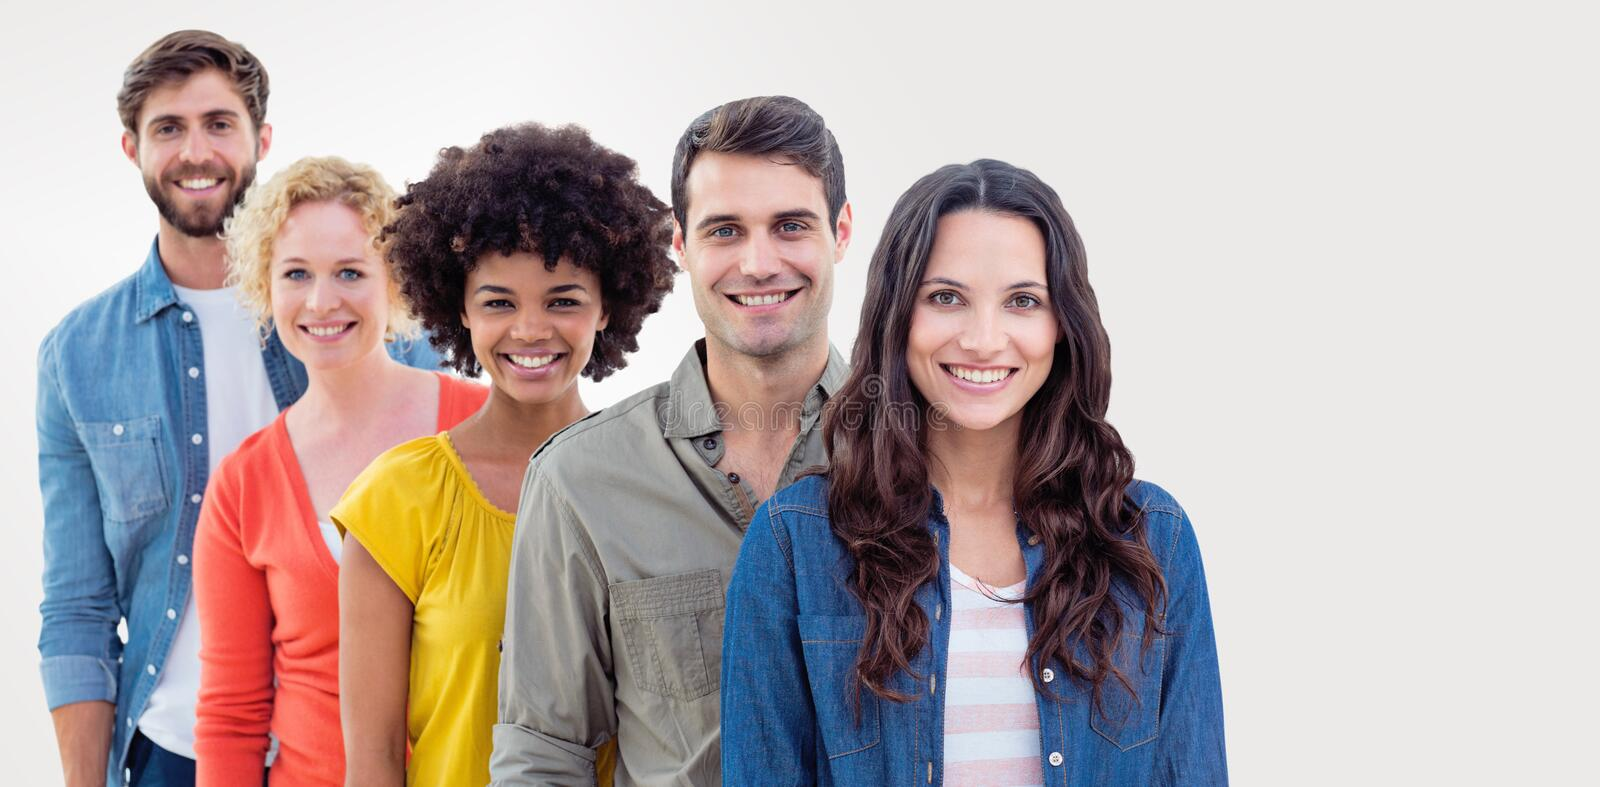 Composite image of group portrait of happy young colleagues. Group portrait of happy young colleagues against grey background royalty free stock photos